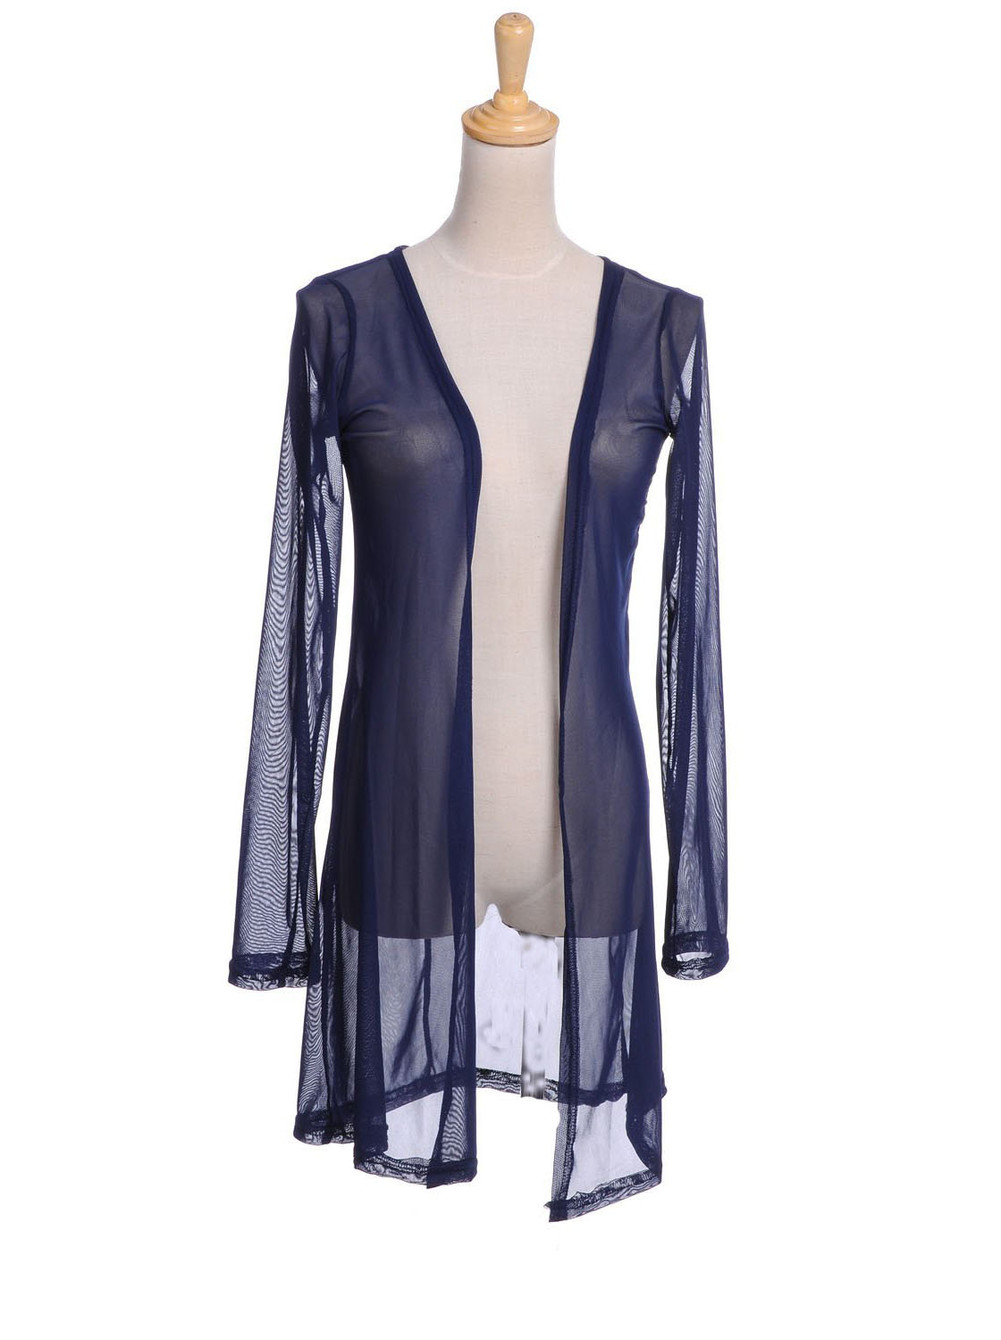 See-through Mesh Key Hole Back Long Sheer Maxi Cardigan - PrettyGuide